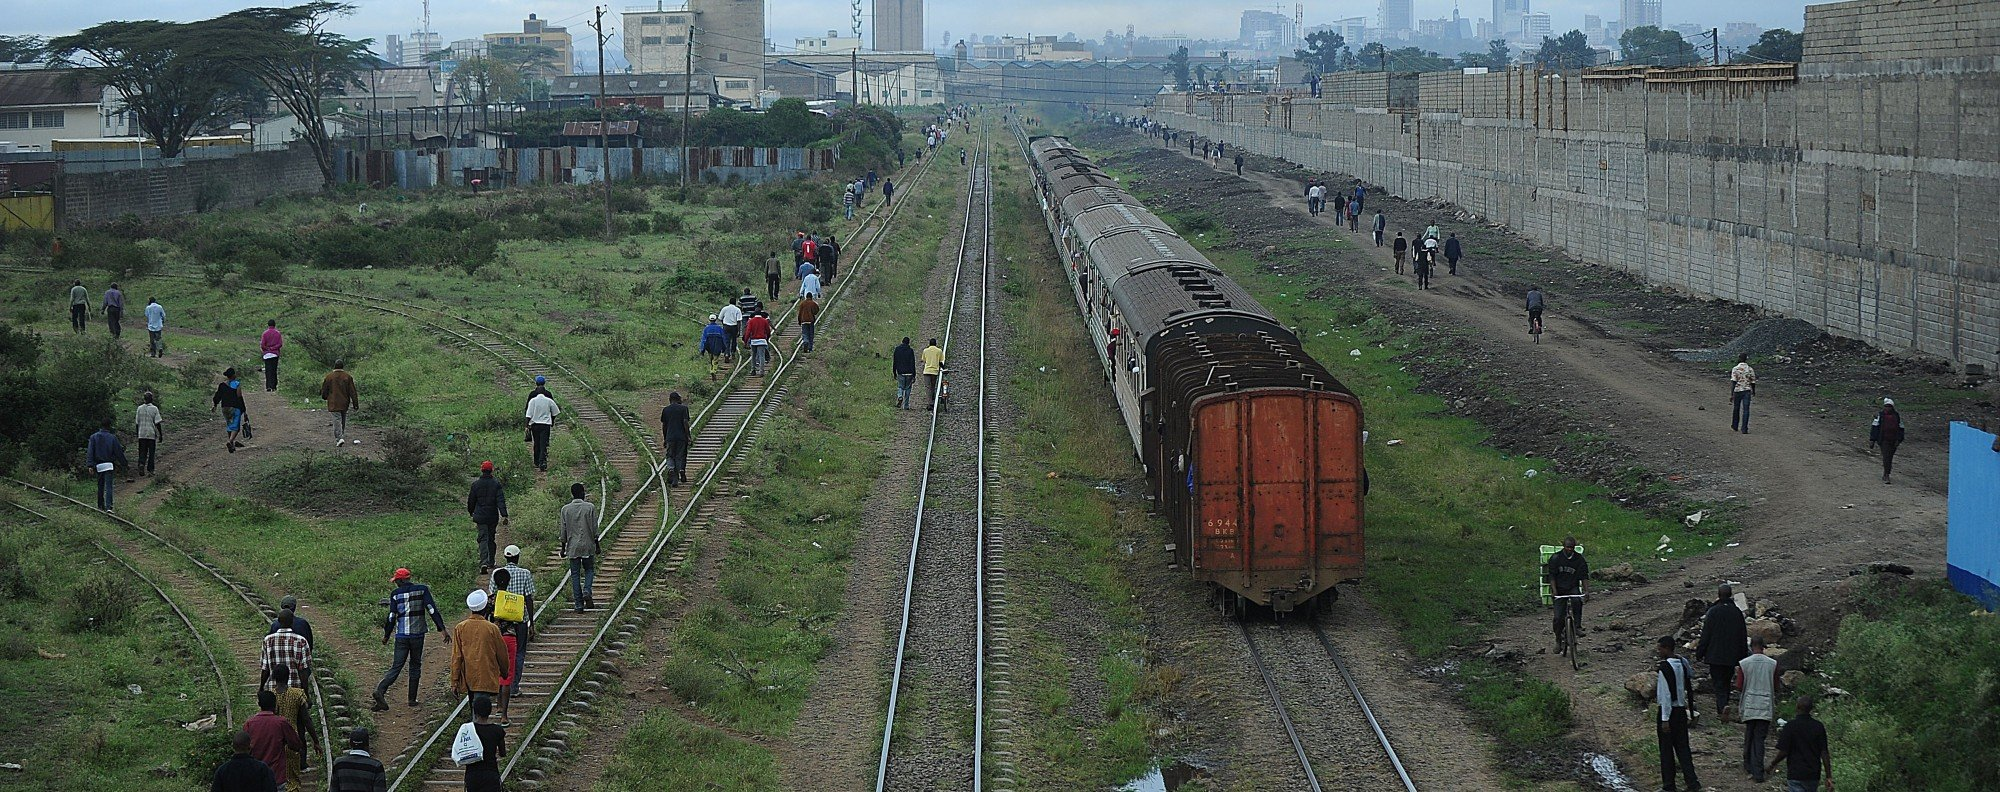 The Lunatic Express How Kenyas Colonial Railway Compares To New